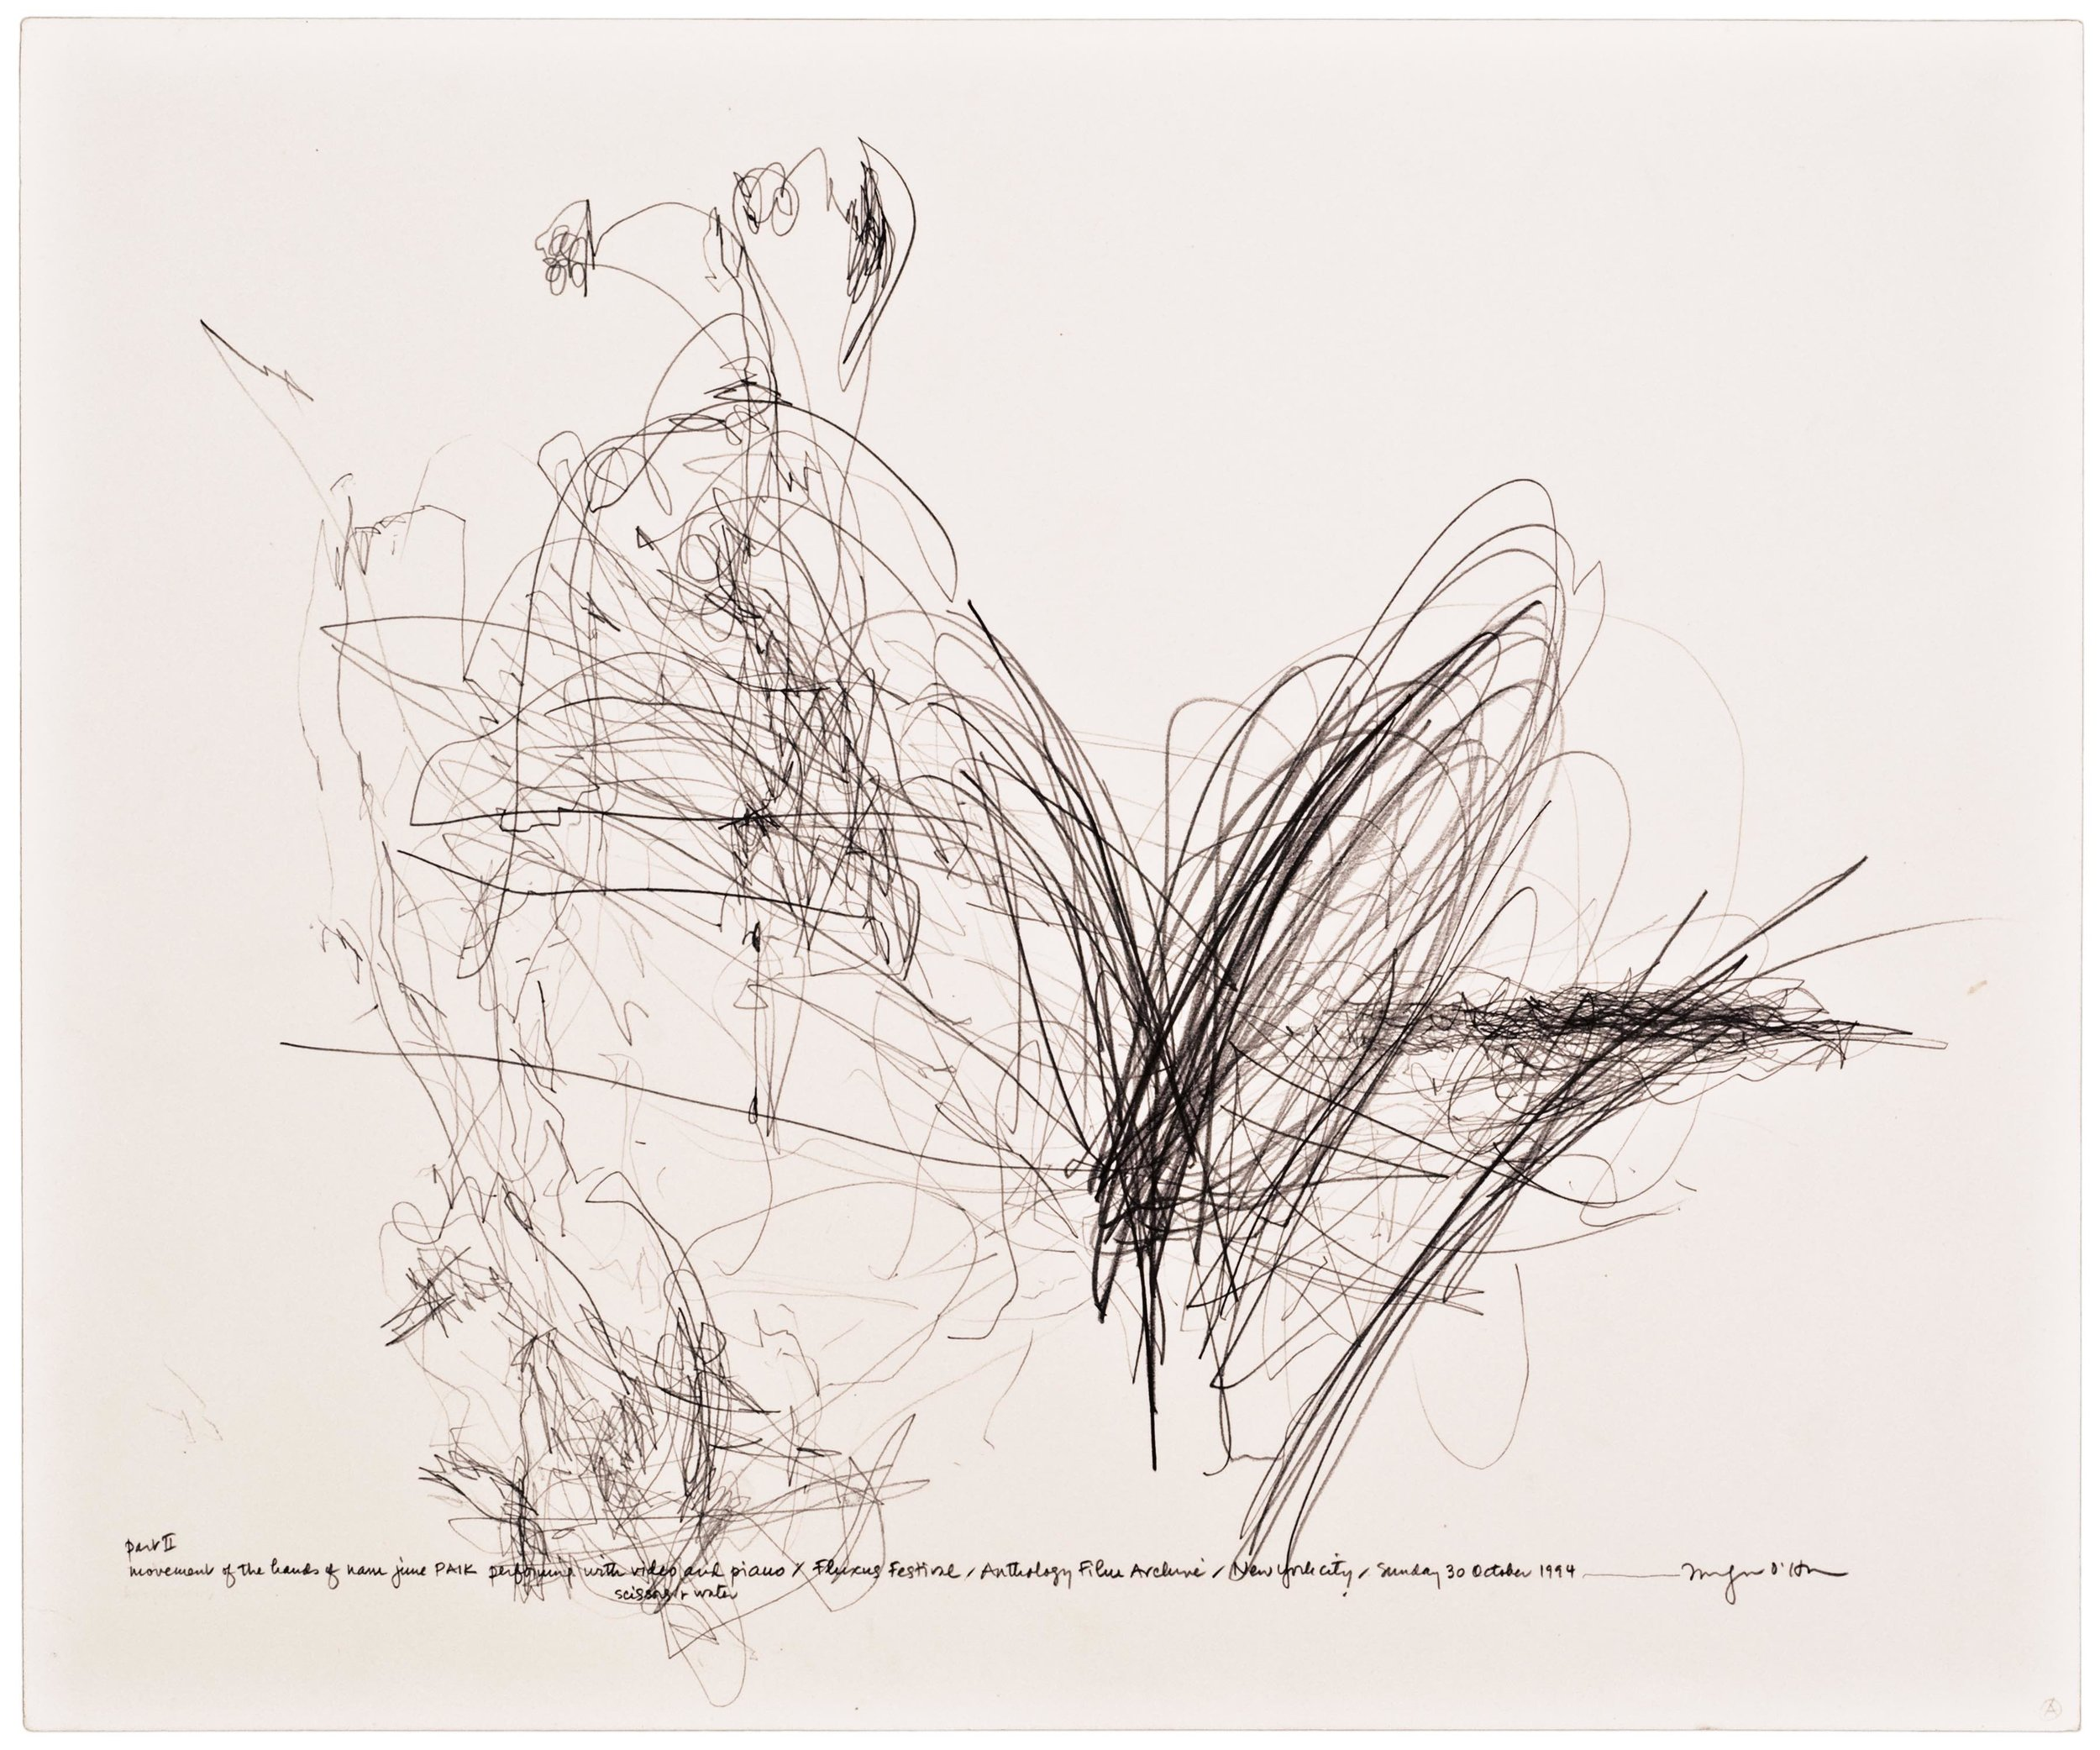 Morgan O'Hara,  LIVE TRANSMISSION: movement of the hands of NAM JUNE PAIK performing with video and piano, scissors and water, and ropes of fake pearls / Fluxus Festival / Anthology Film Archives/Sunday 30 October 1994/New York City ,14 x 17 in.,Graphite on Bristol paper, 1994